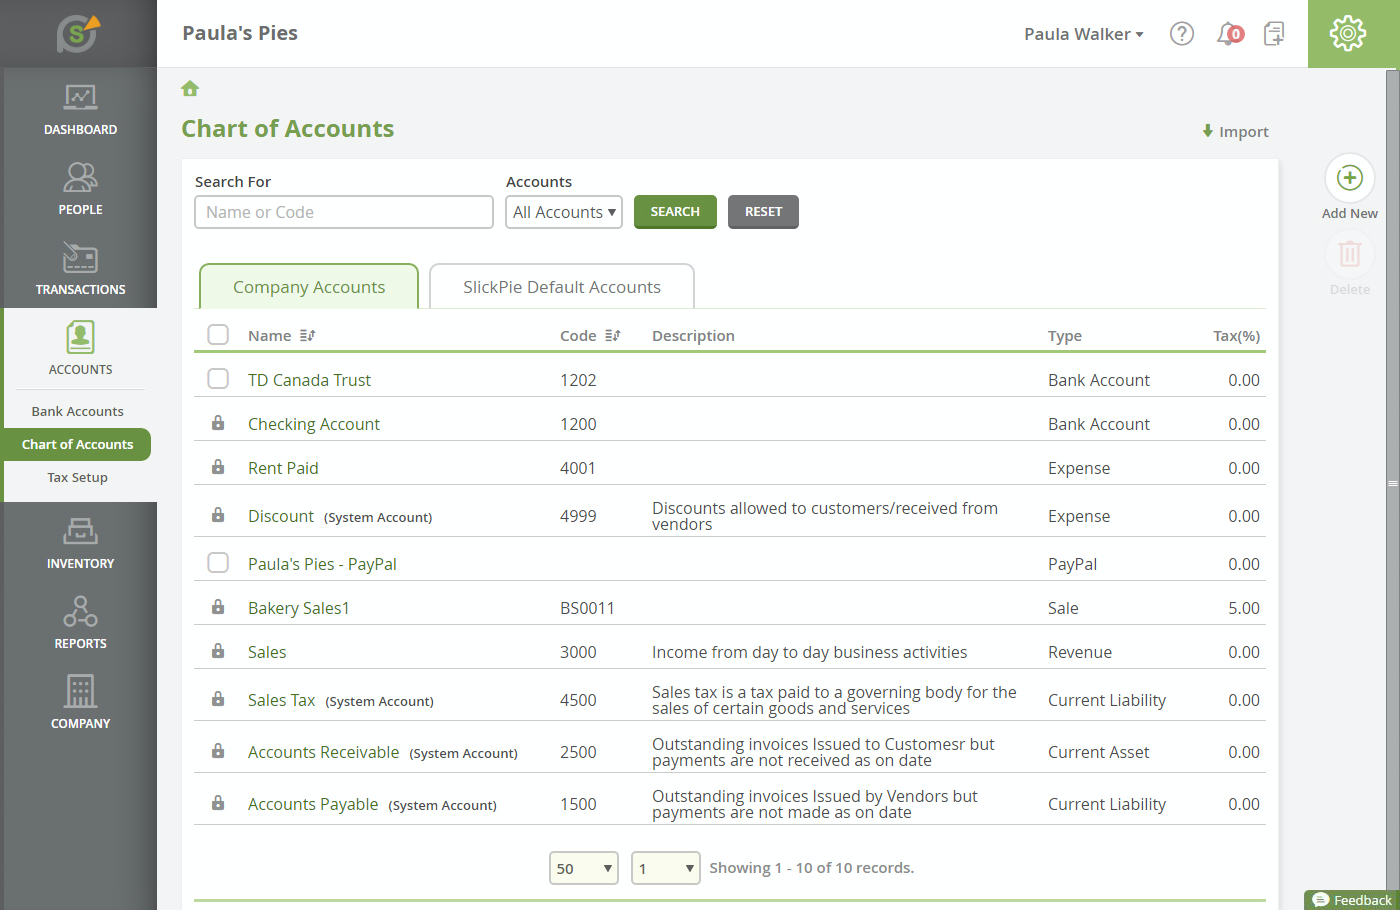 Users can view detailed accounting statements with SlickPie